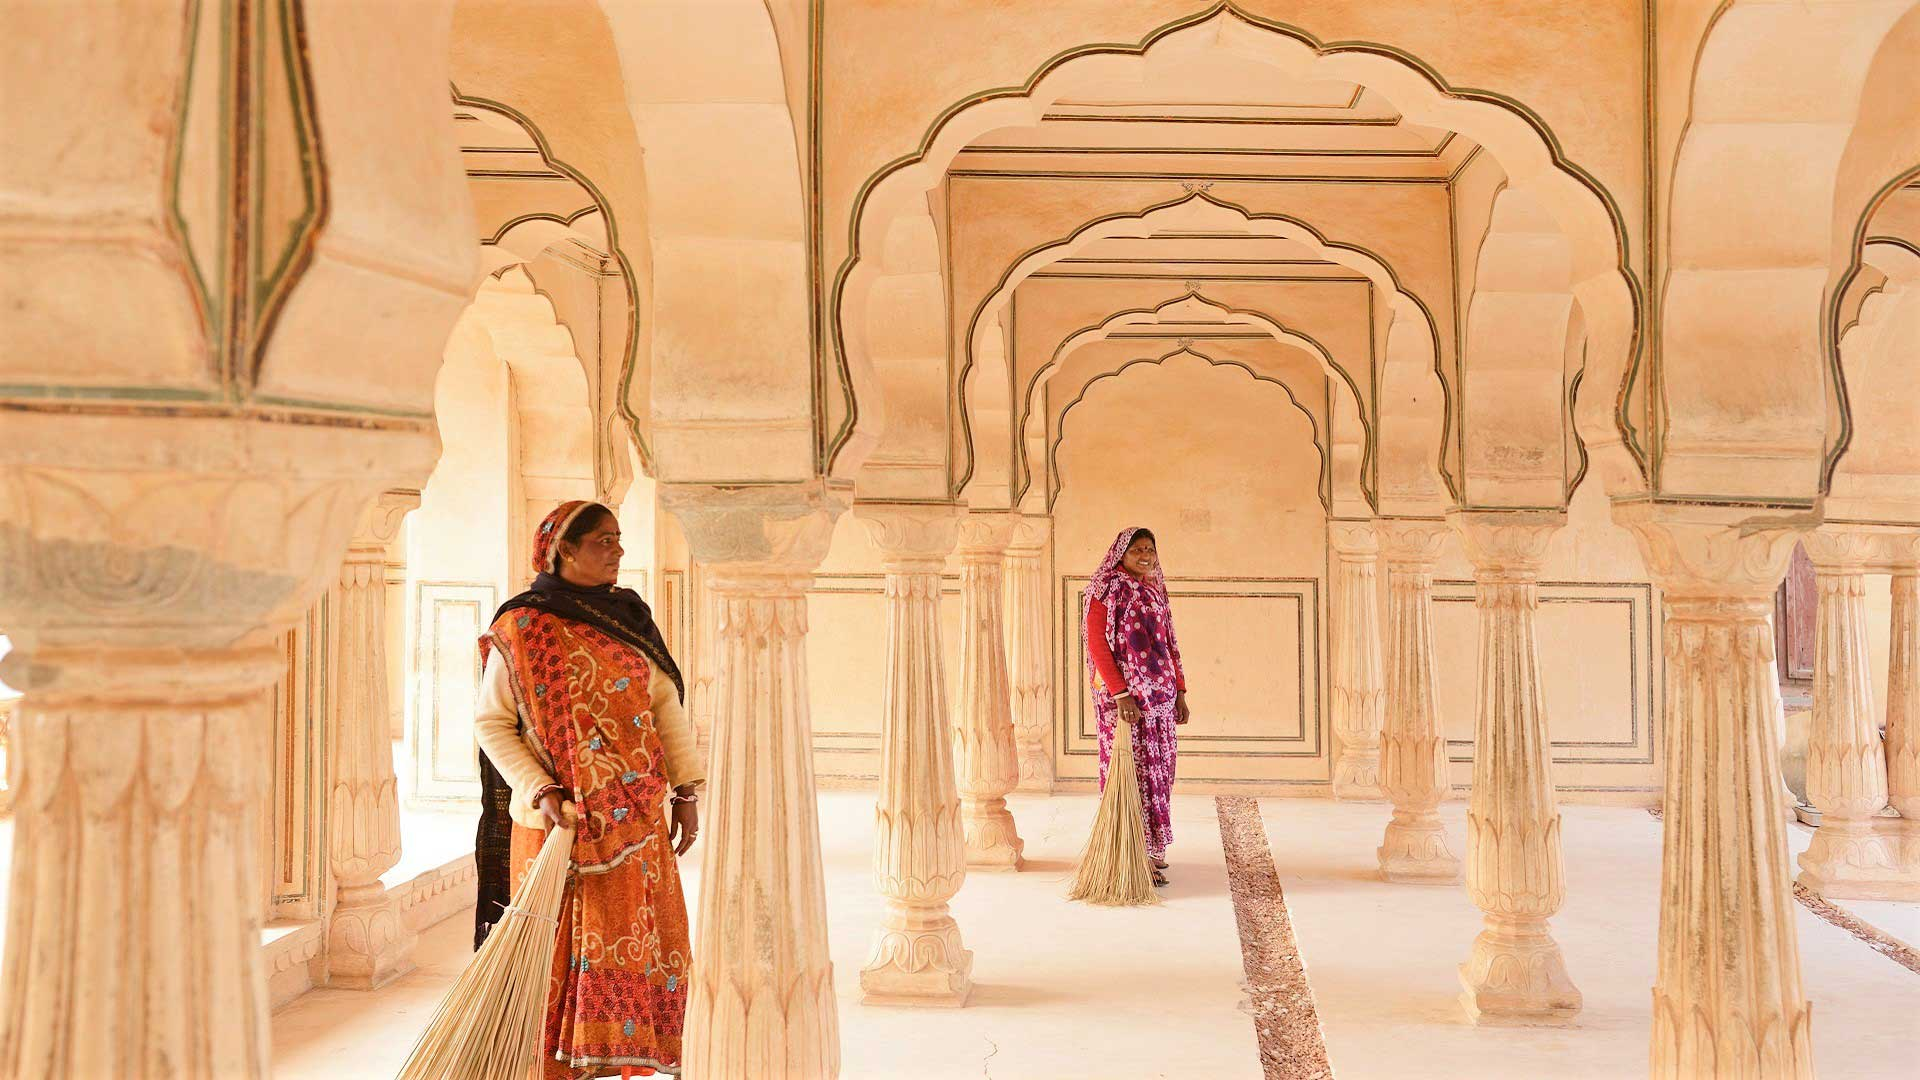 Two sari-clad women stand under elegant archways of Amer (Amber) Fort in Jaipur, India with GeoEx